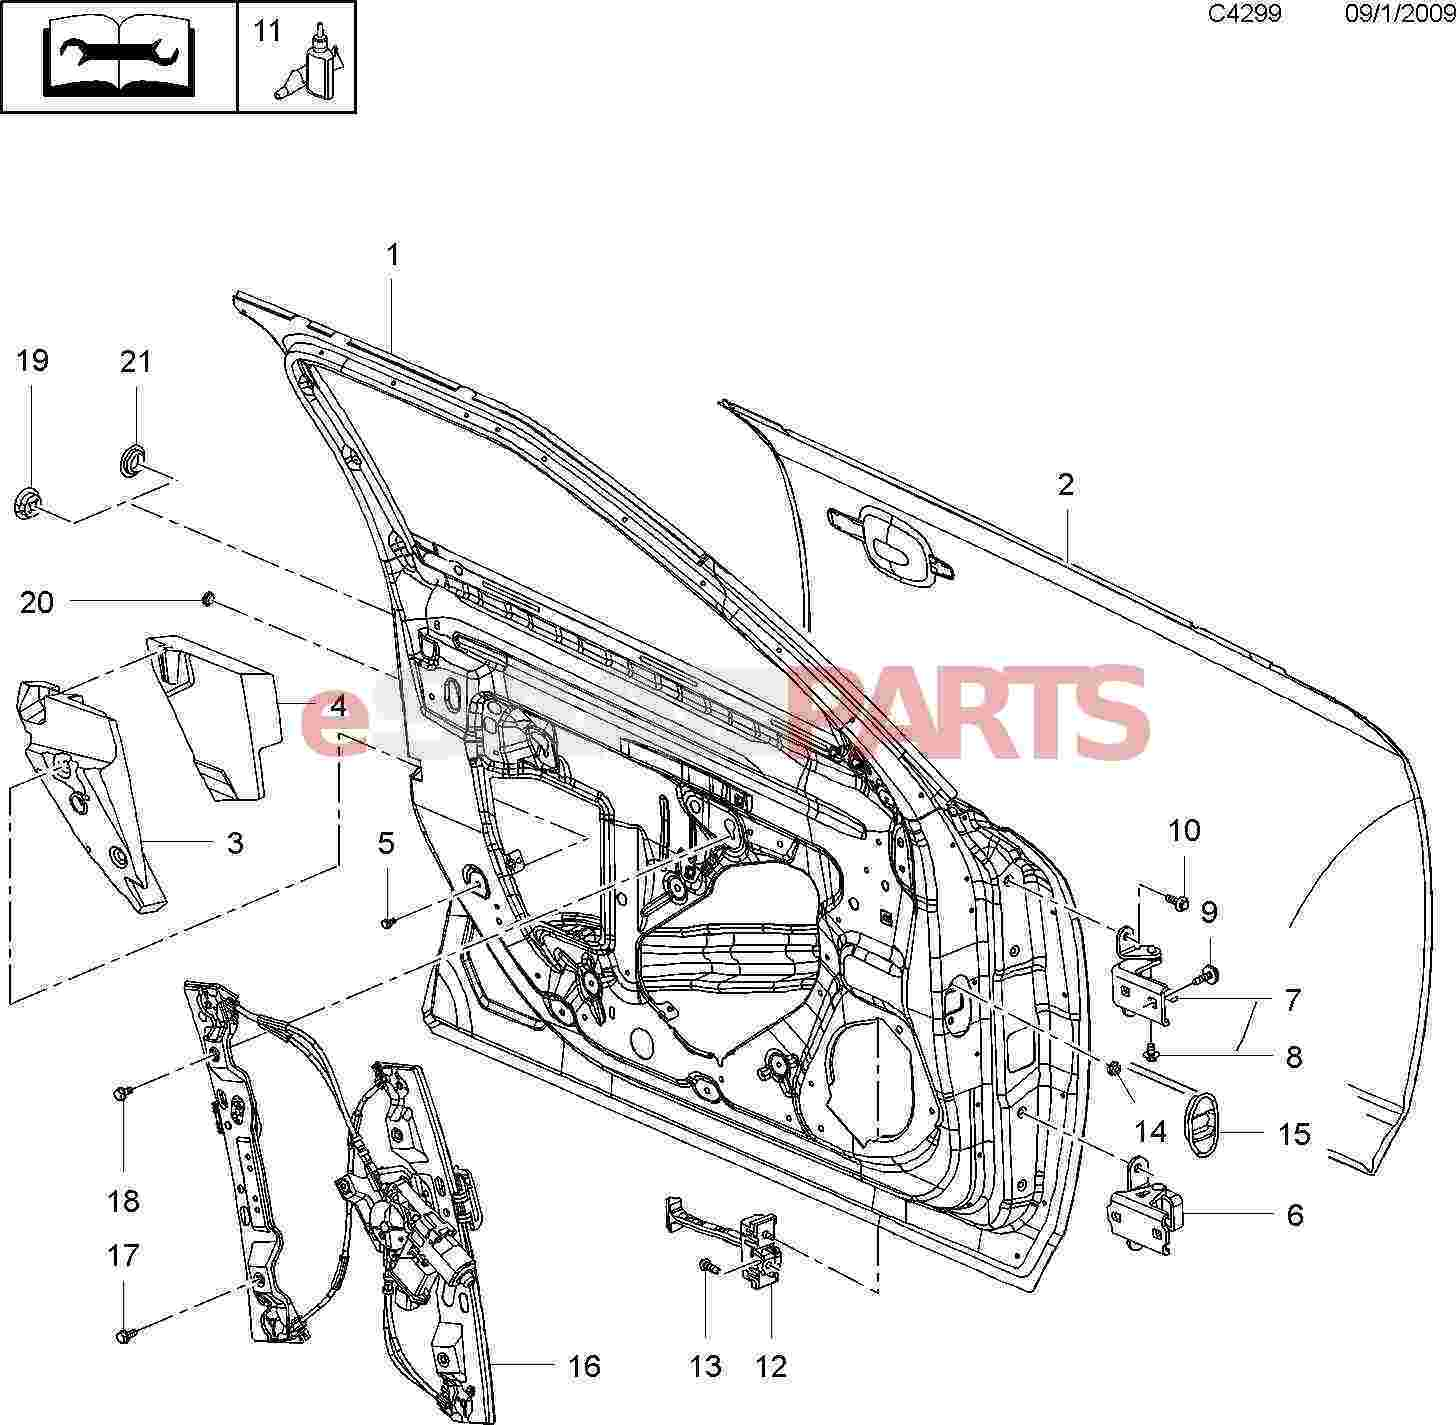 ... 1999 Saab 9 5 Parts Diagram • Wiring Diagram For Free ...